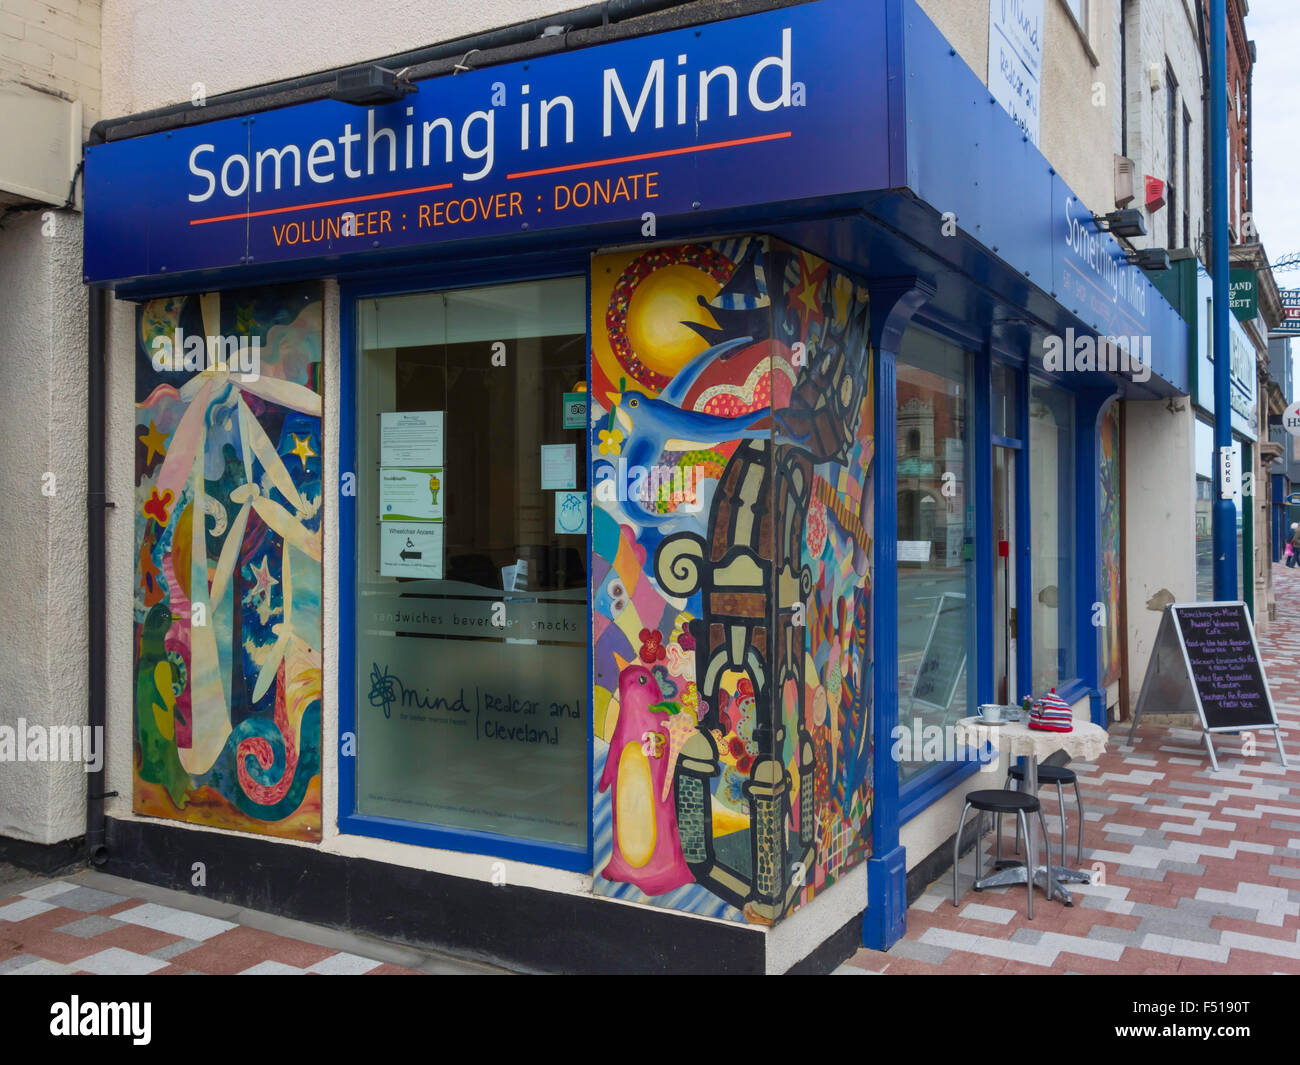 Something in Mind café  run by Mental Health Charity 'Mind' in Redcar North Yorkshire England - Stock Image